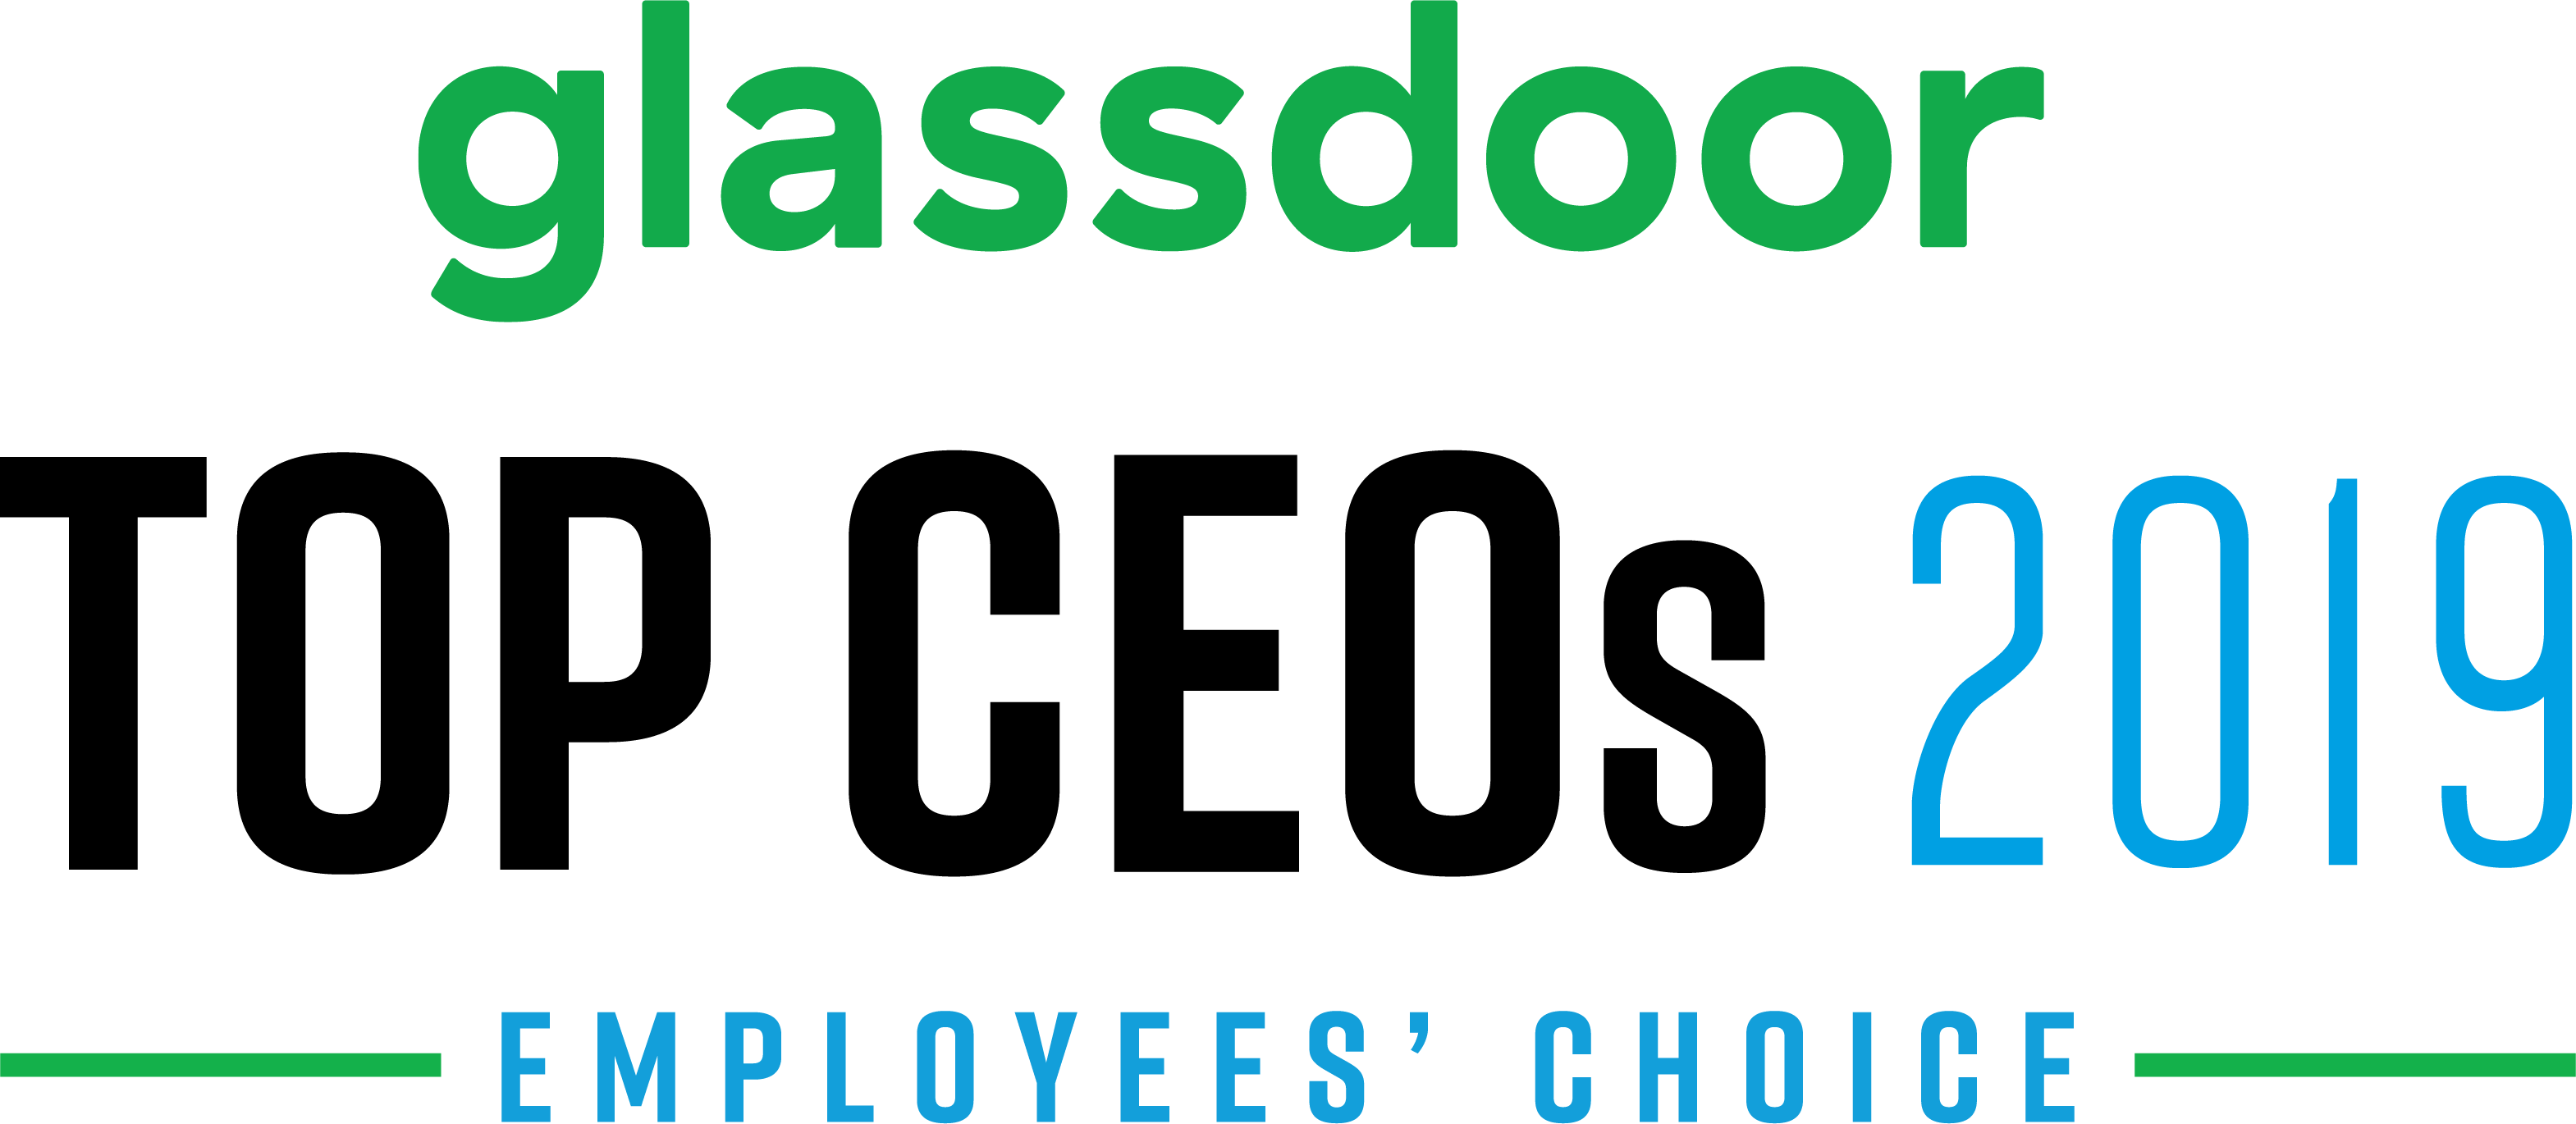 KnowBe4 CEO Stu Sjouwerman Named a Glassdoor Top CEO for 2019